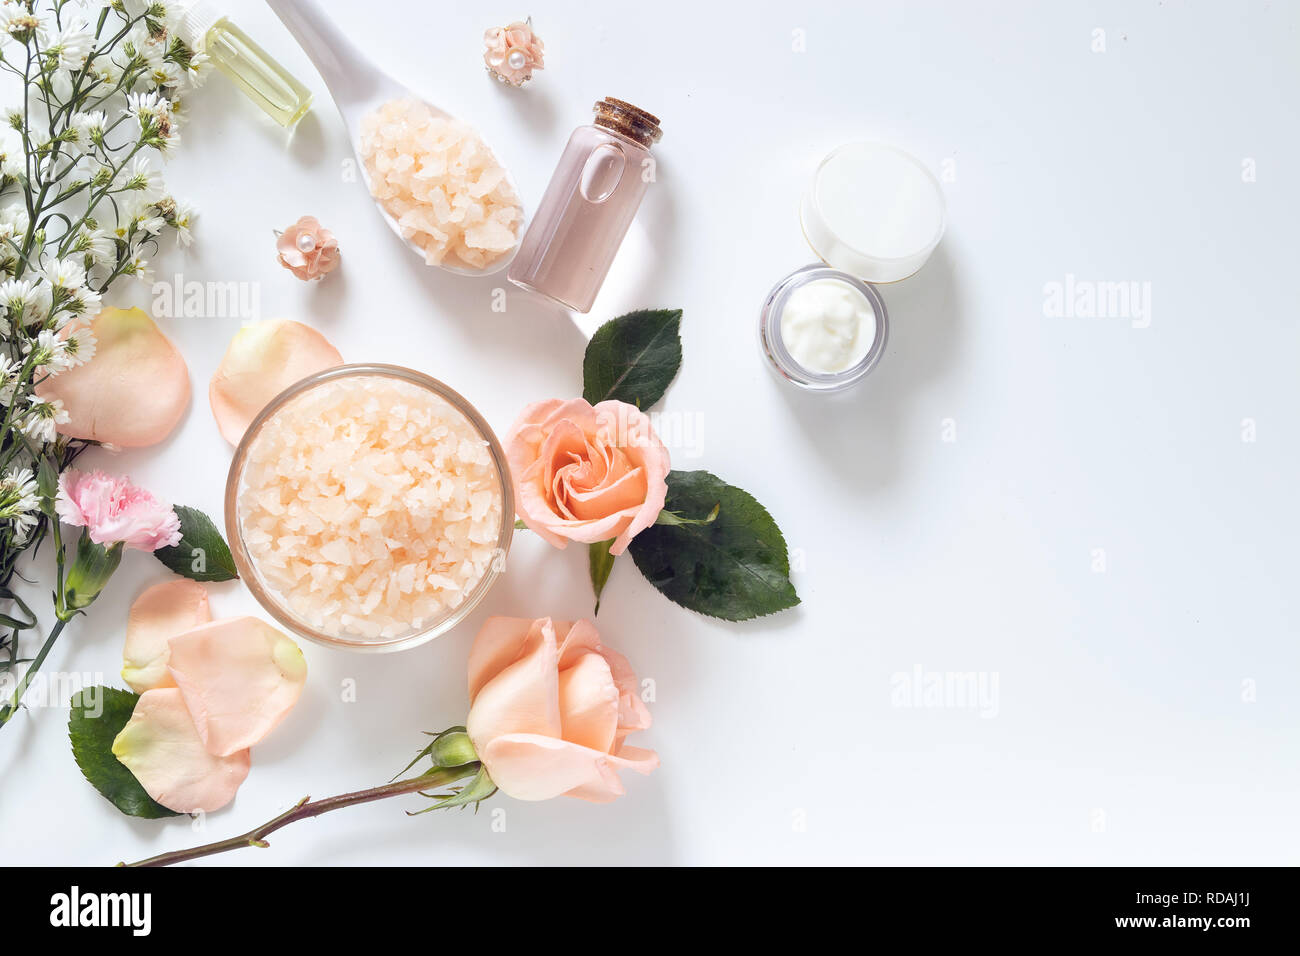 skin care concept. flat lays of skincare remedies style in package with blank label with natural materials isolated on white background Stock Photo